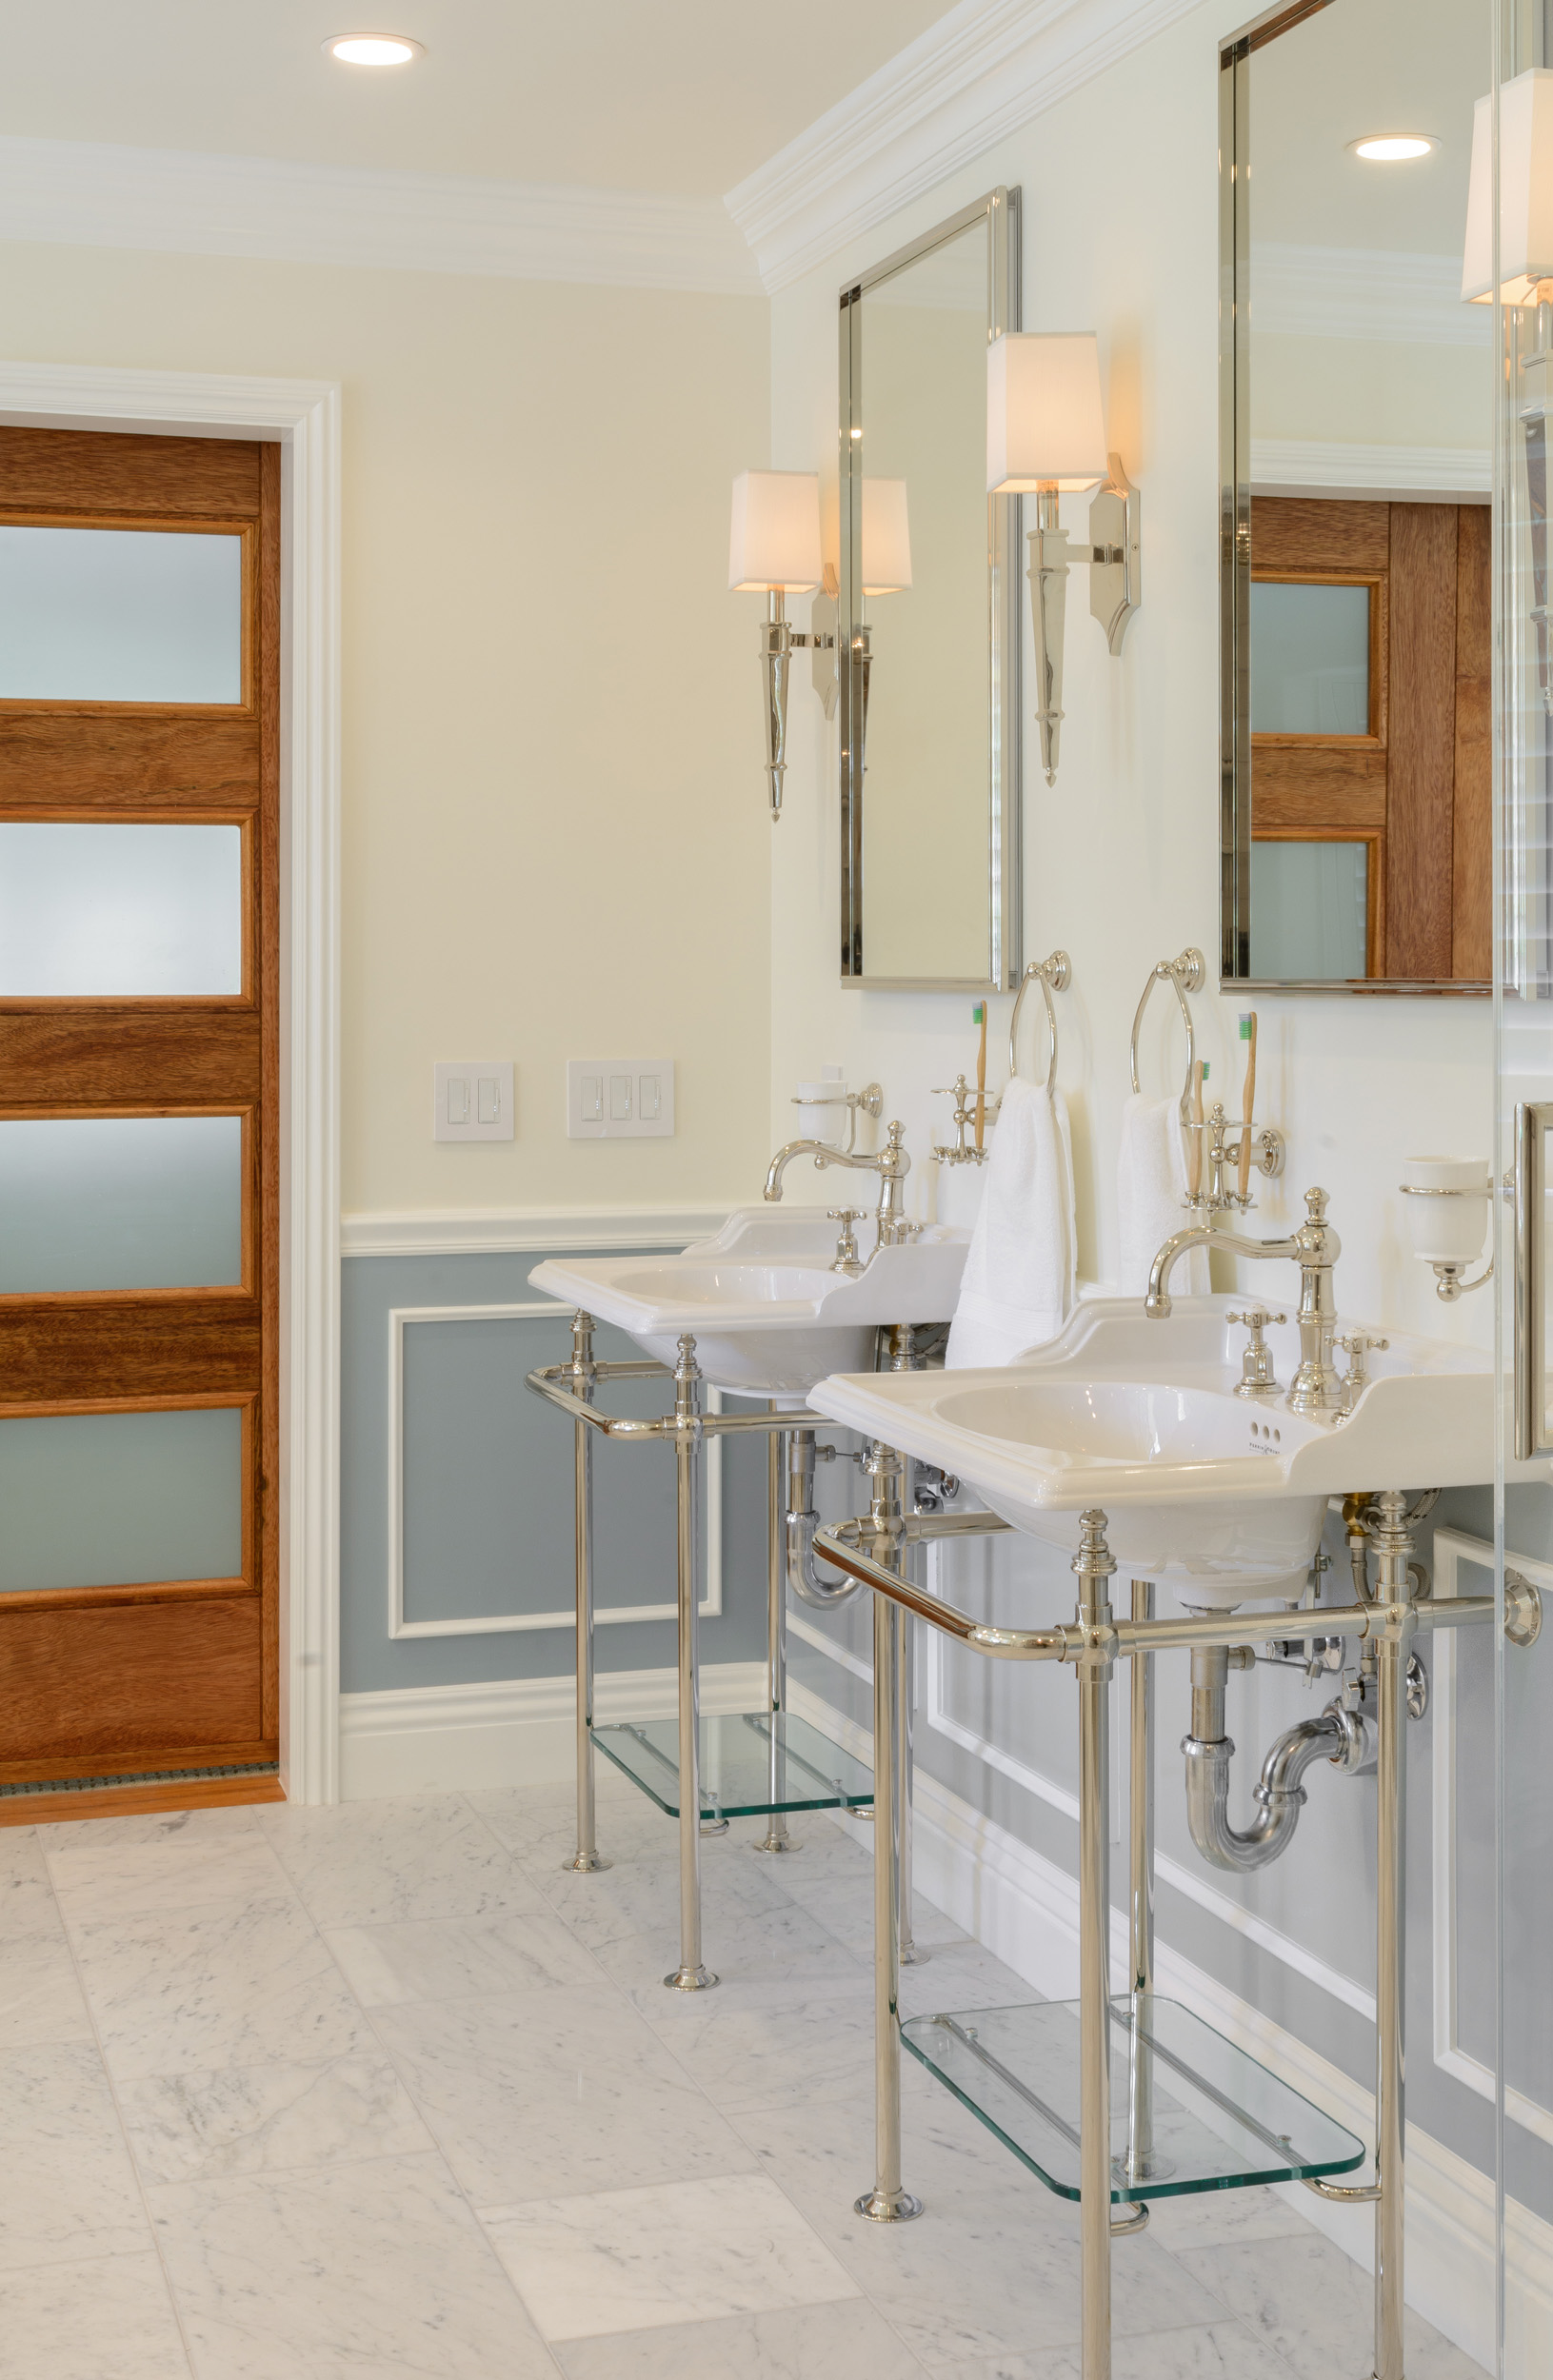 Bathroom door with privacy glass: mahogany and frosted glass barn doors